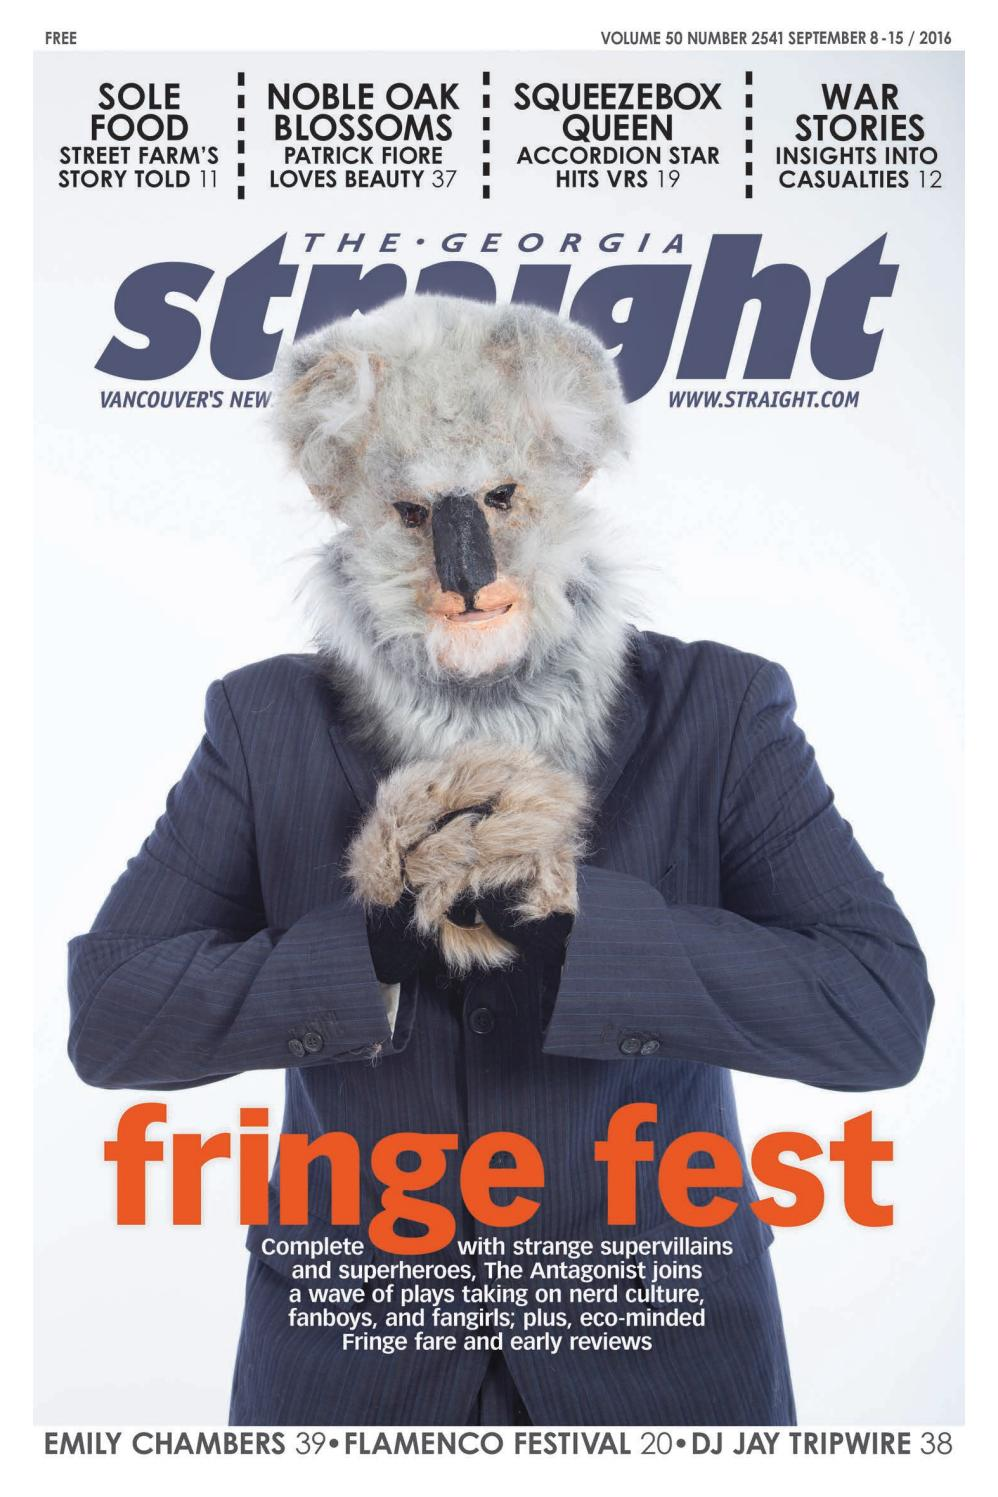 The Georgia Straight - Fringe Fest - Sept 8, 2016 by The Georgia Straight -  issuu